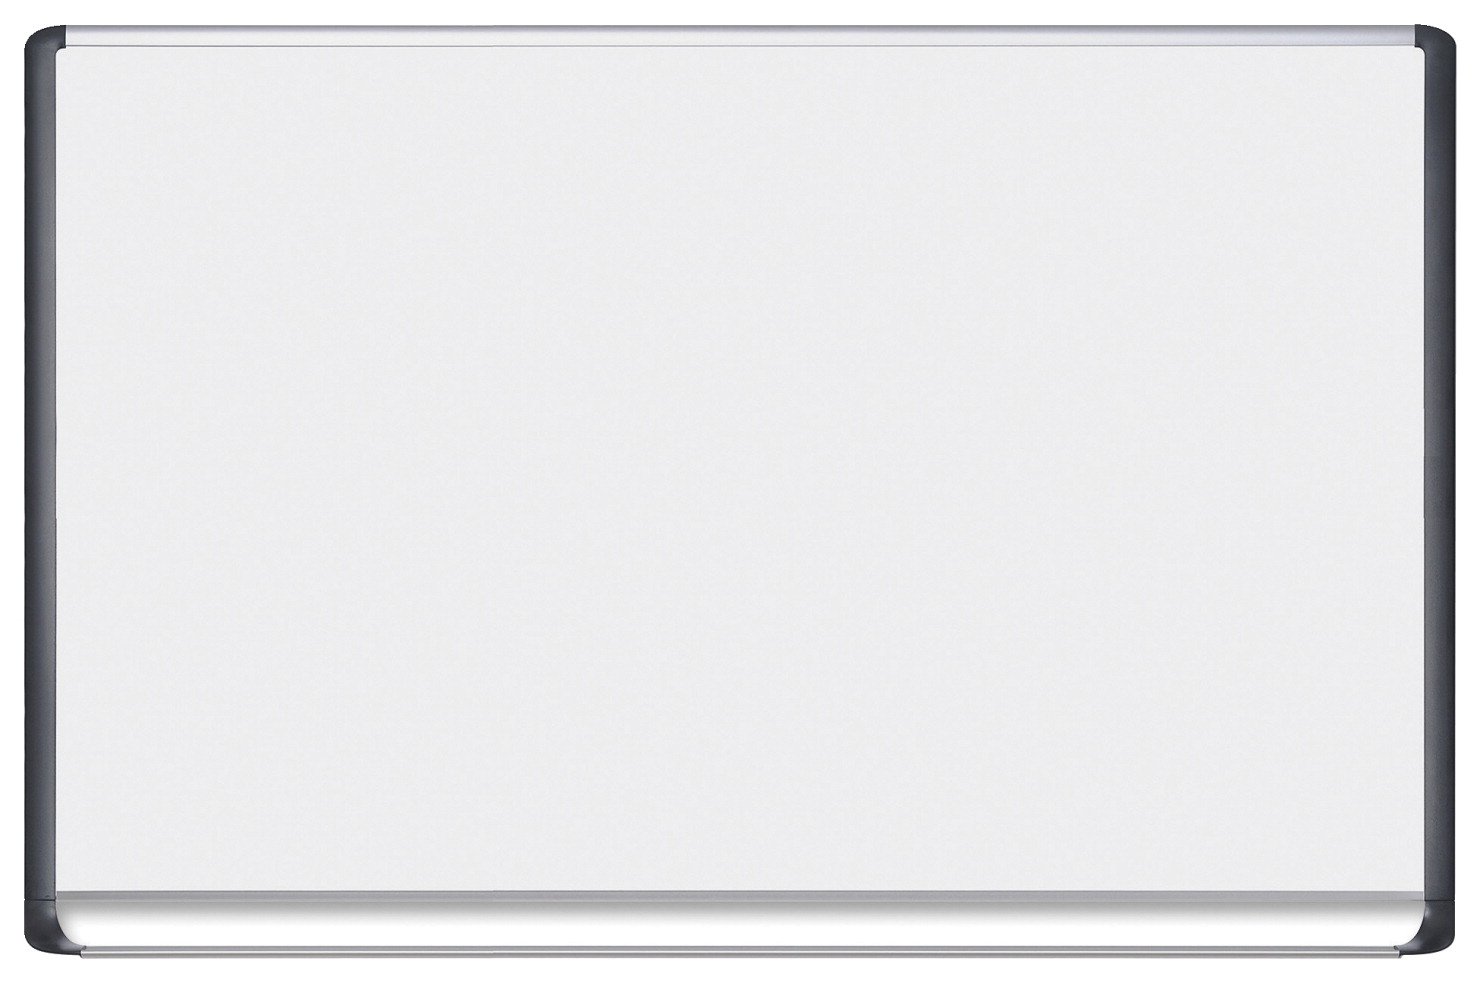 Bi-silque  MasterVision Porcelain Whiteboard -- Dry-Erase Board, Magnetic, 72